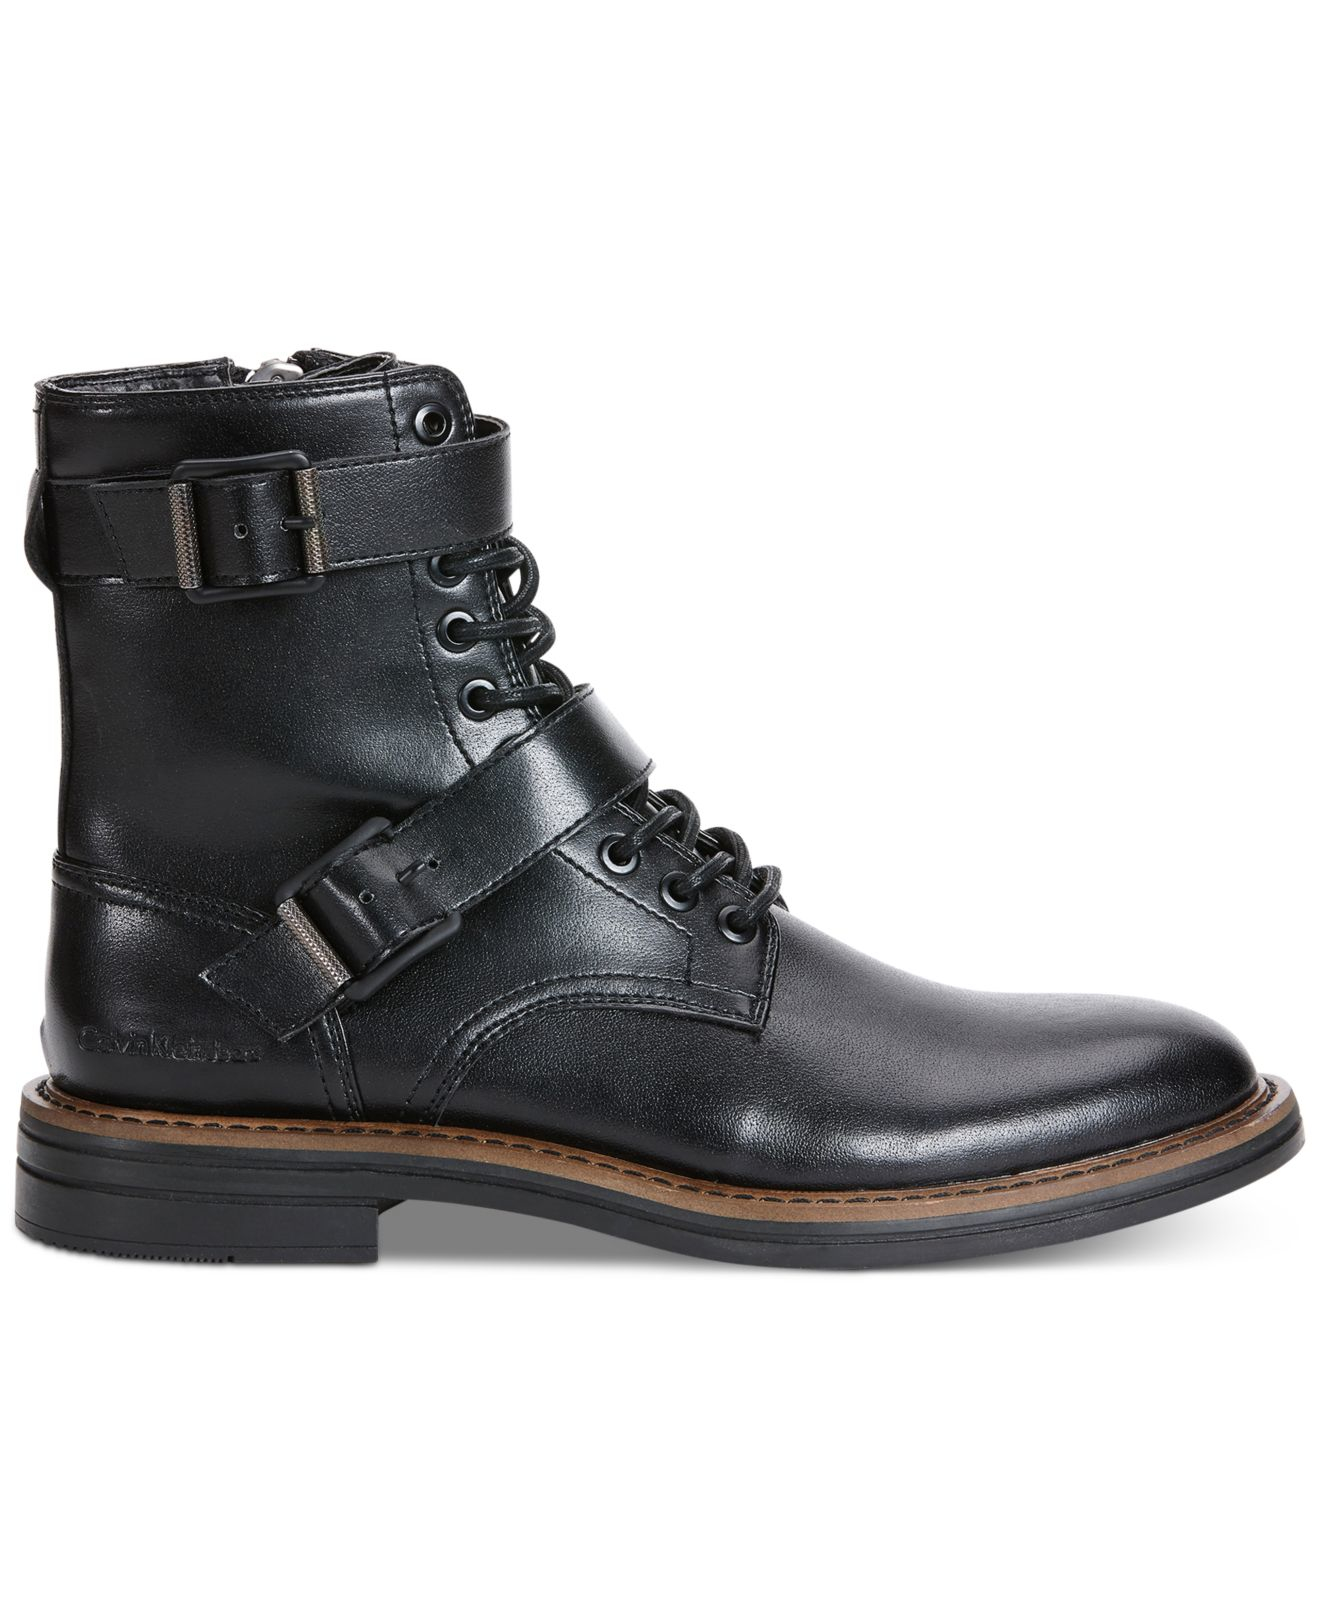 Calvin Klein Jeans Everest Double Buckle Boots in Black ...